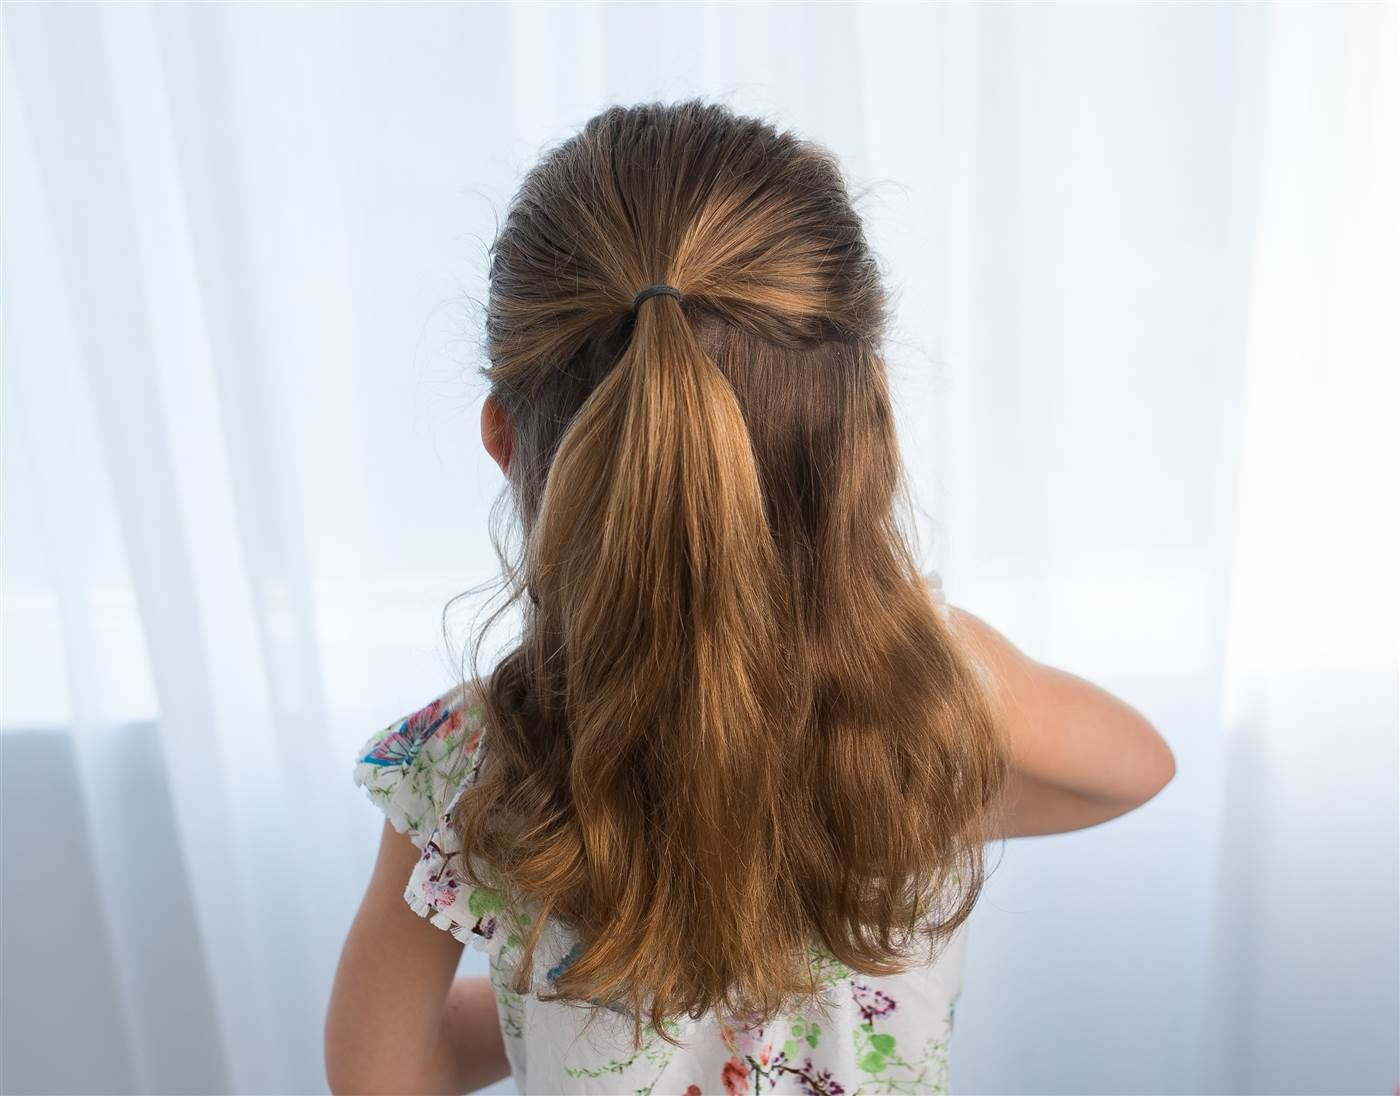 5 easy back-to school hairstyles for girls | Easy hairstyles for kids, Little girl hairstyles ...